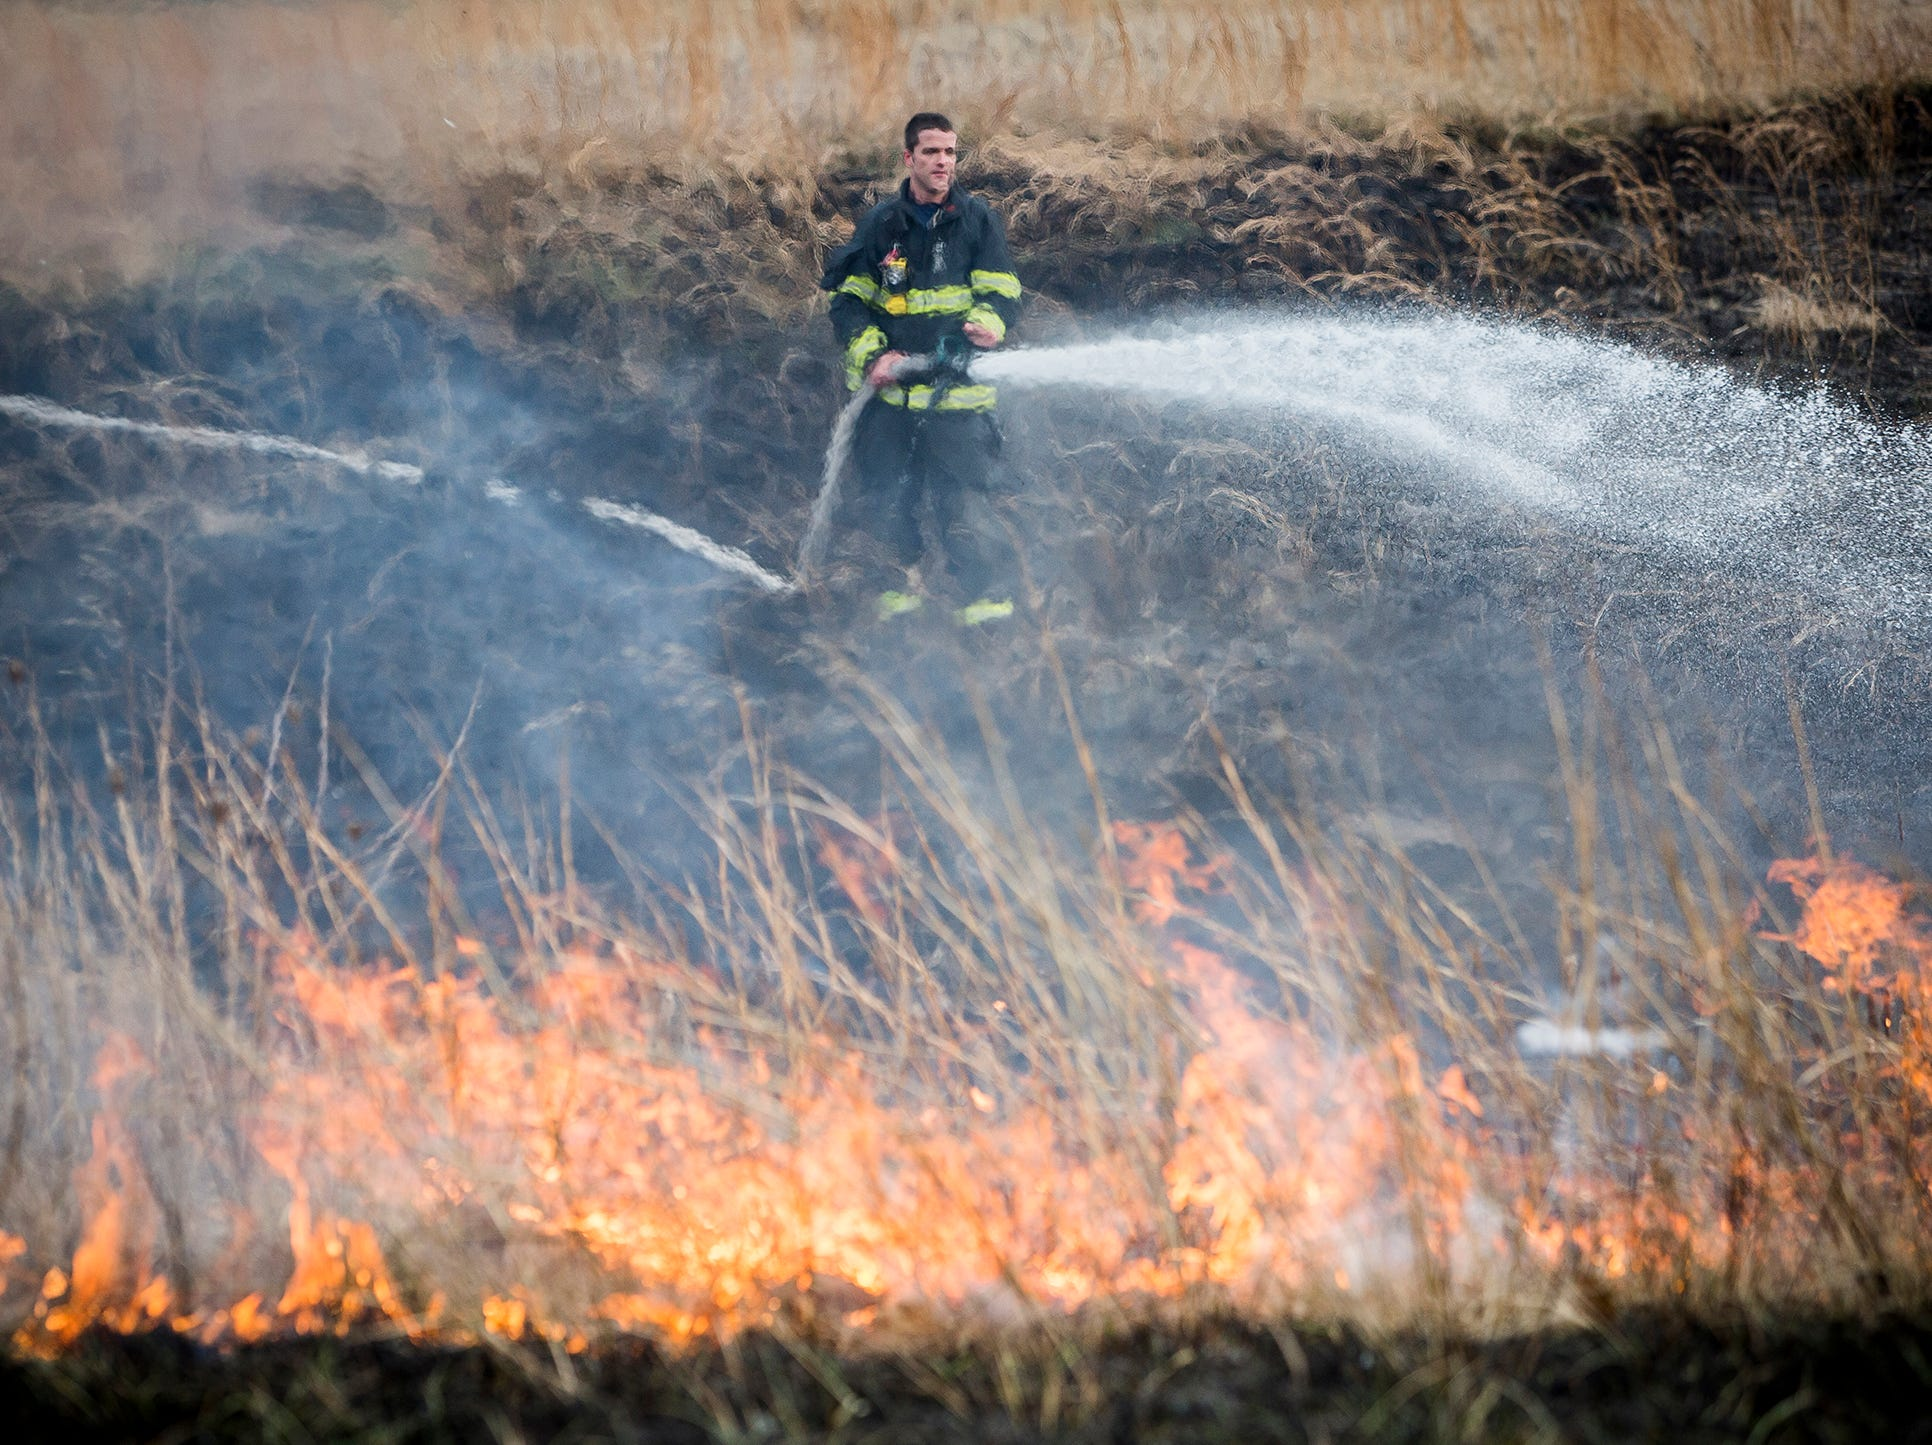 Monroe Township firefighters stop the spread of  multiple field fires along State Road 67 at locations north and south of the Muncie Bypass shortly after 3 p.m. Friday. According to Fire Chief Greg Hudson  the cause of the fires, which were spread at various locations along 67 including sections of the median, is indeterminate. None of the witnesses who reported the incident saw the fires start. Fire trucks were positioned between the burning fields and nearby houses as a precaution.